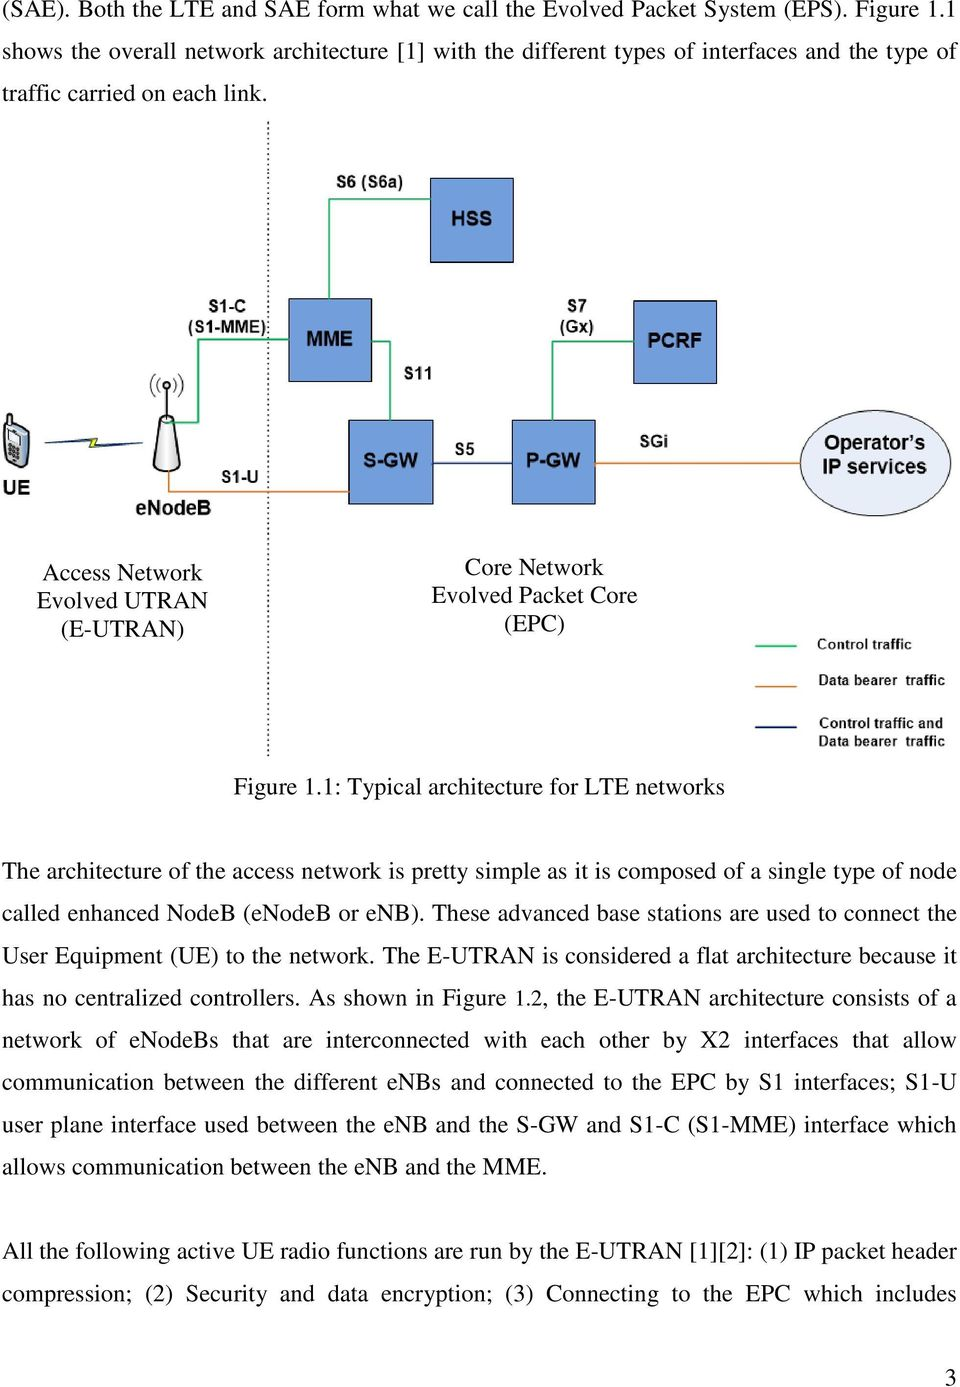 LTE Traffic Generation and Evolved Packet Core (EPC) Network